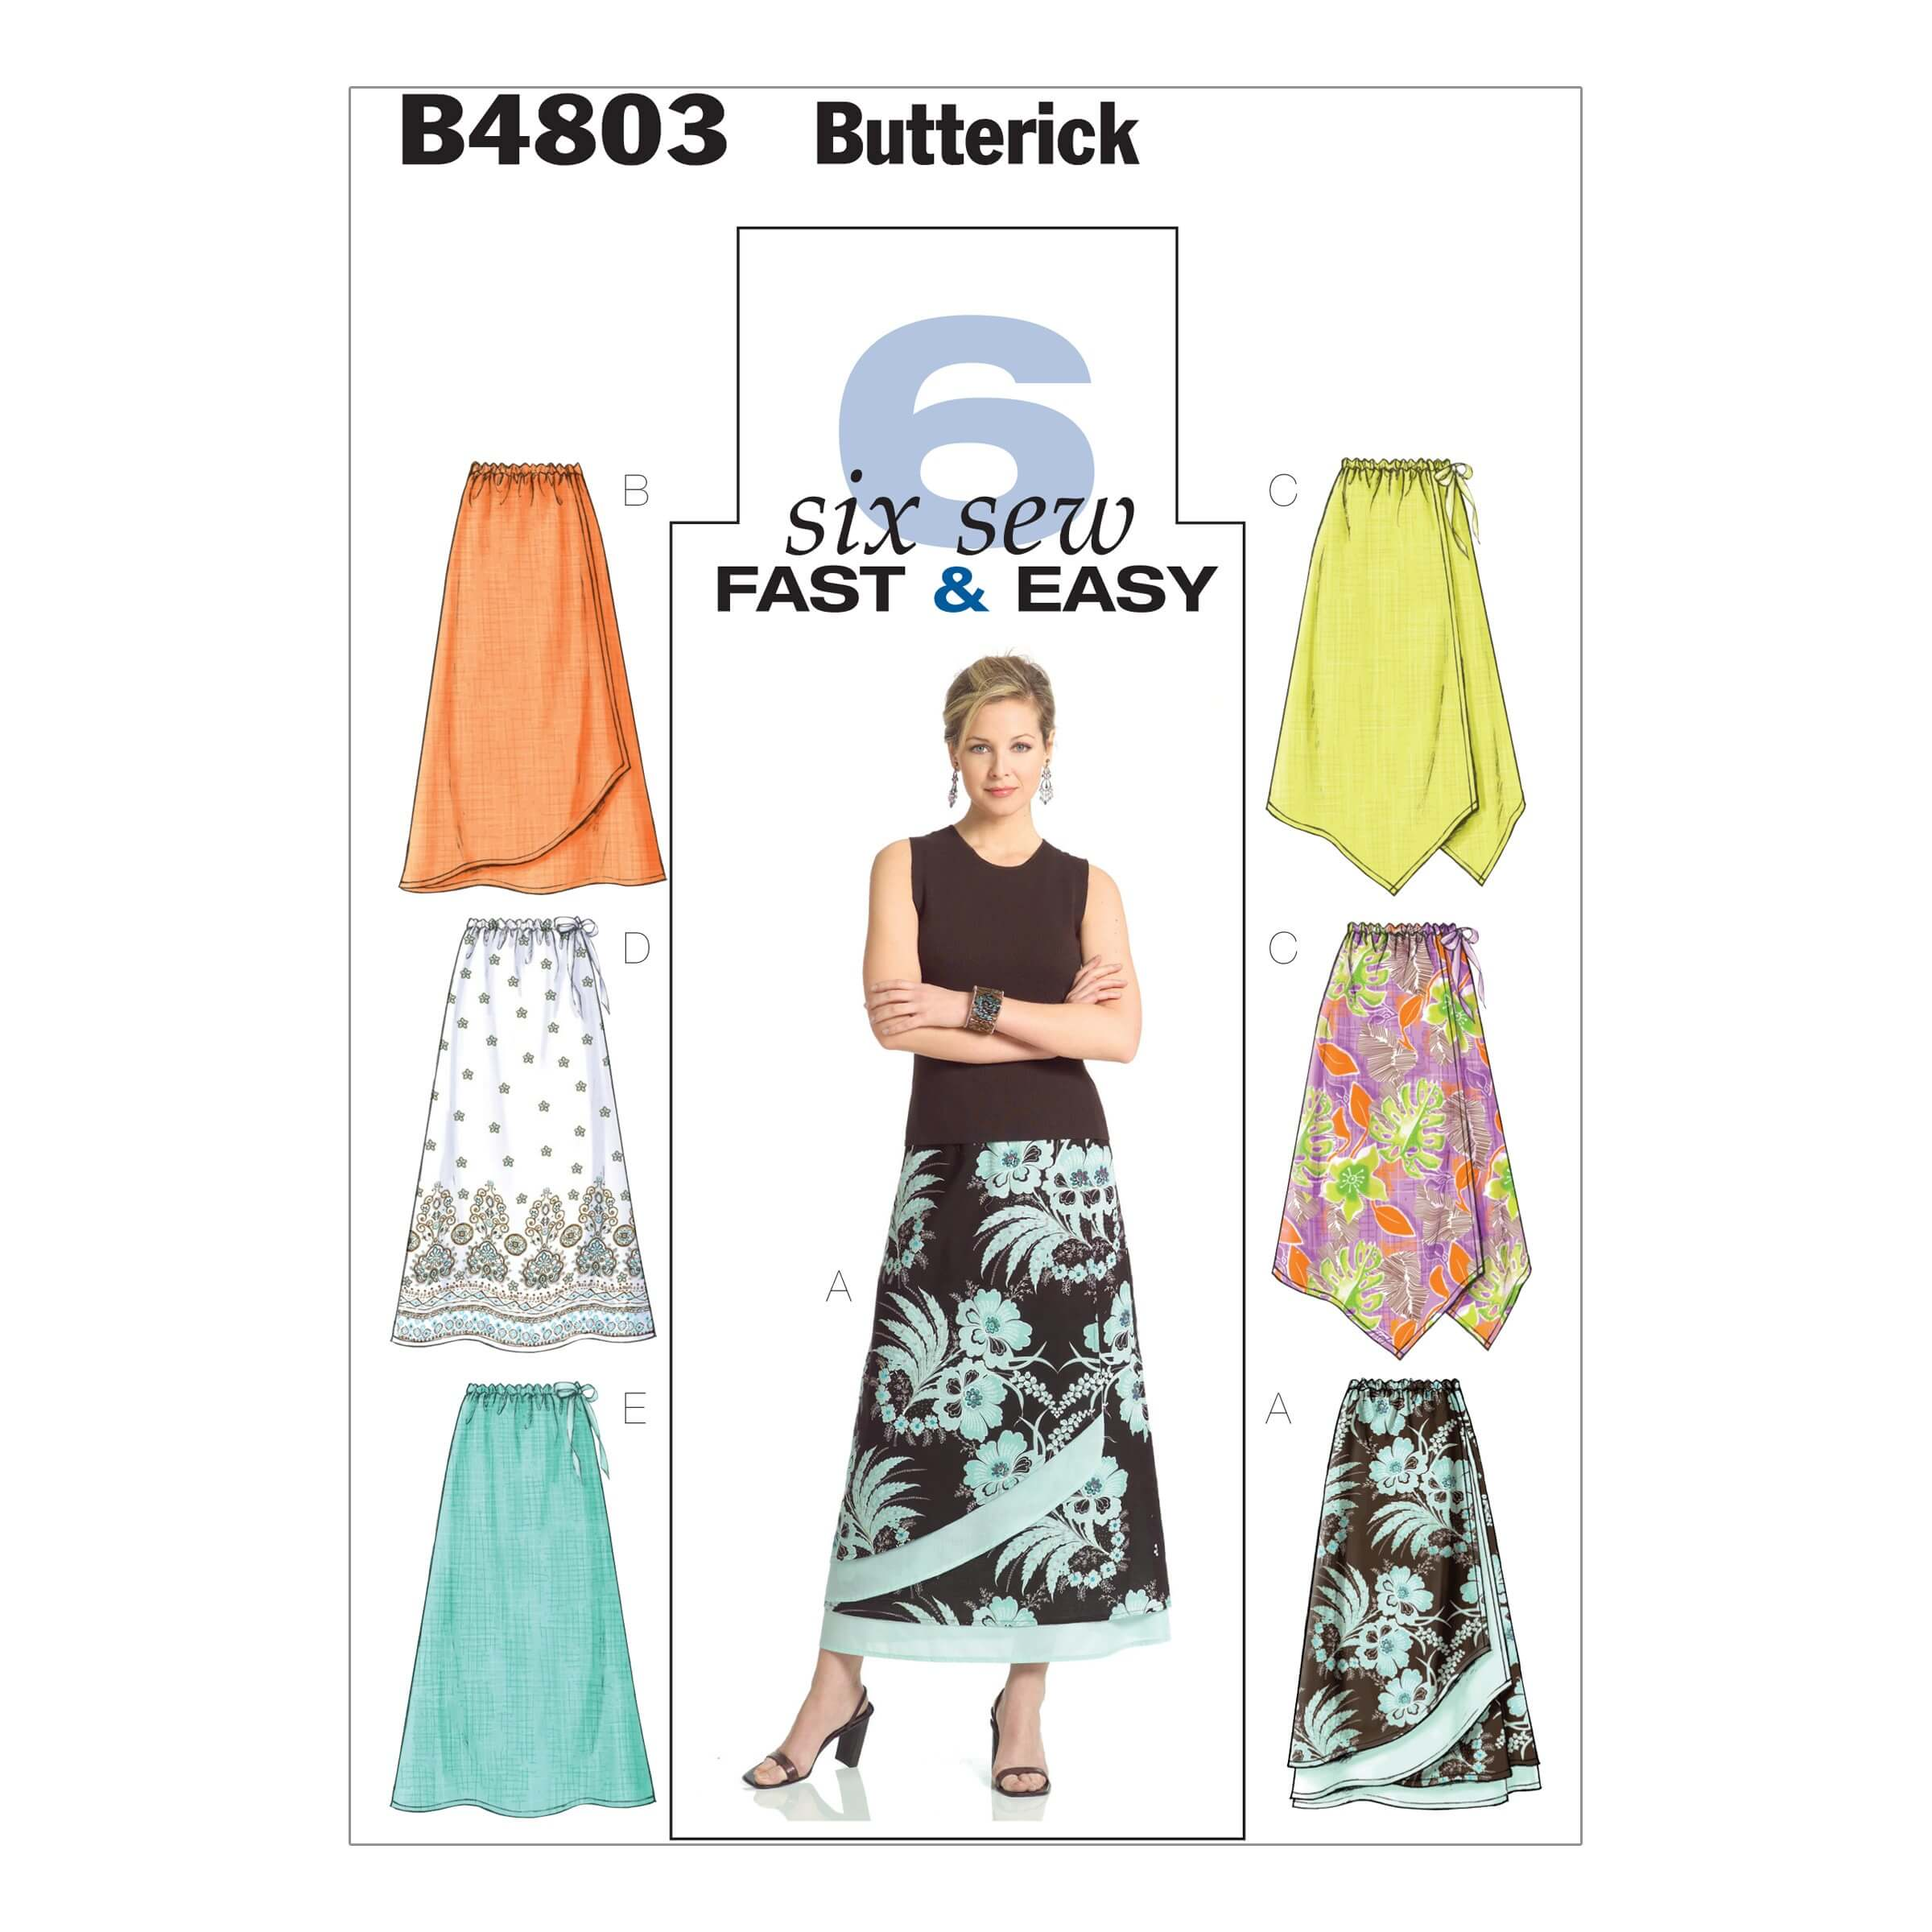 Butterick Sewing Pattern 4803 Misses' Petie skirt Elasticated Waist